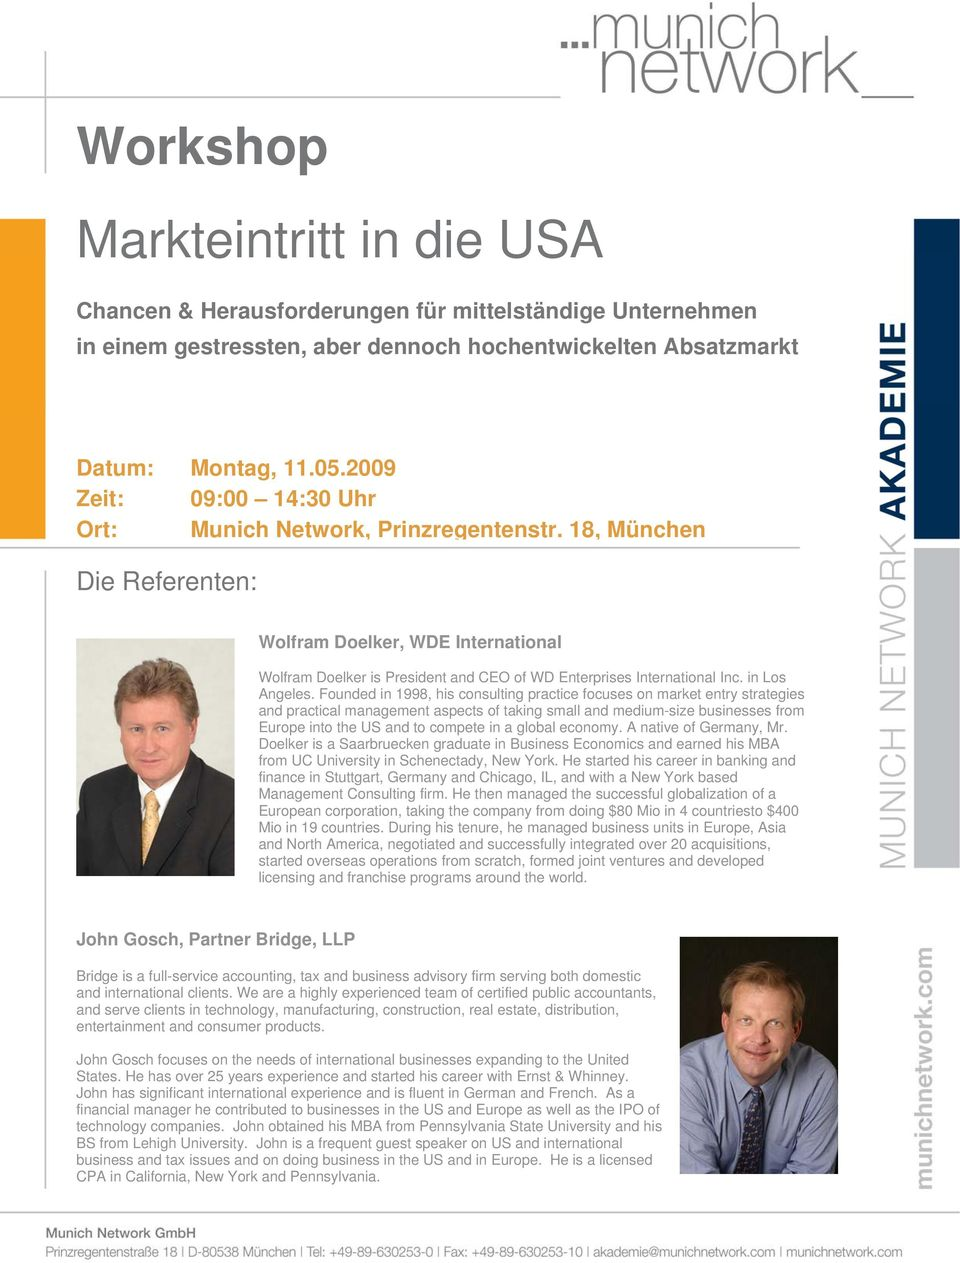 global economy. A native of Germany, Mr. Doelker is a Saarbruecken graduate in Business Economics and earned his MBA from UC University in Schenectady, New York.